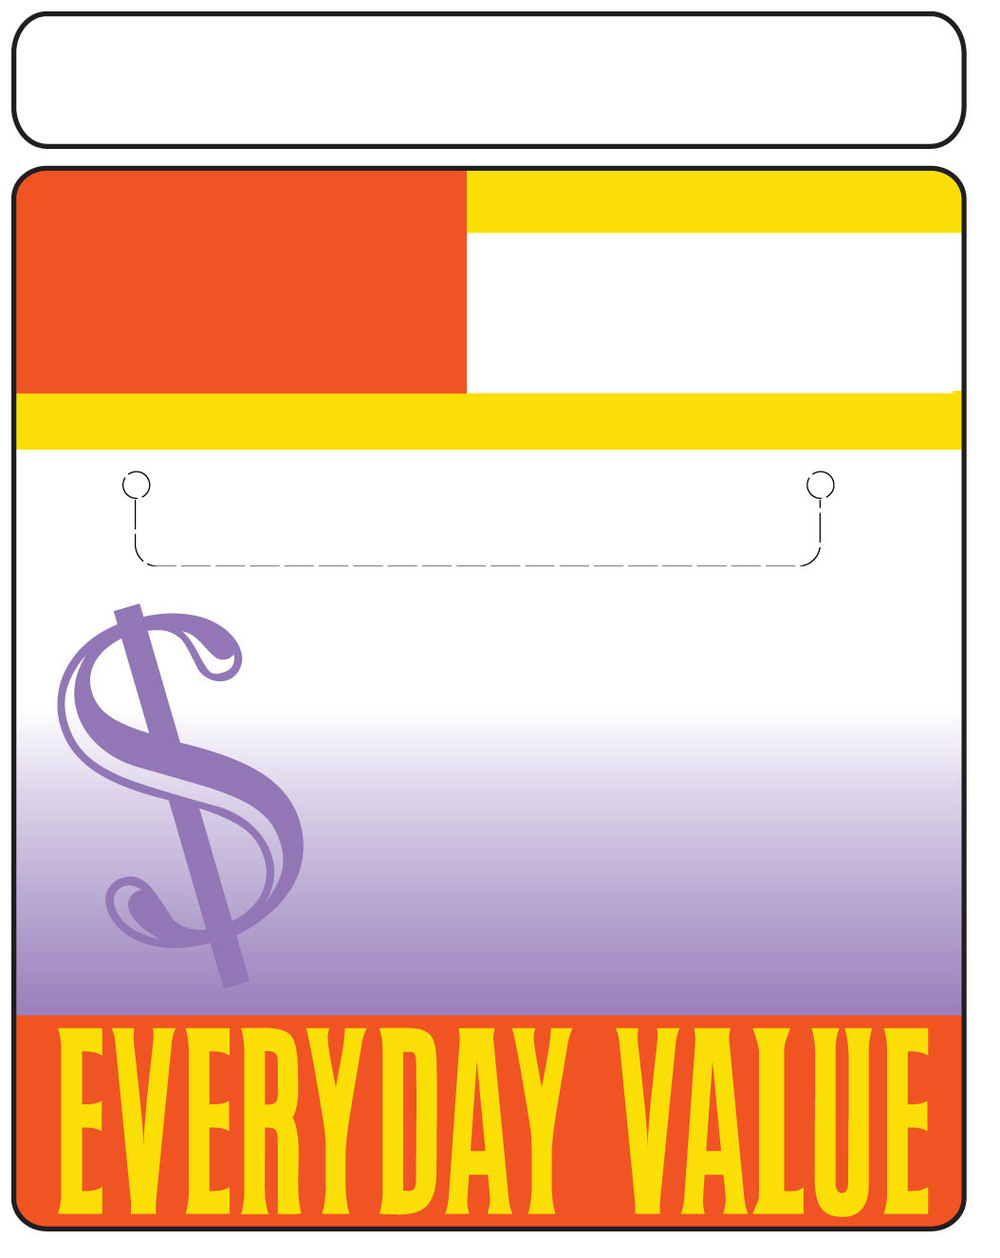 Artist Pen - Shelf Sticker for Everyday Dollar Savings